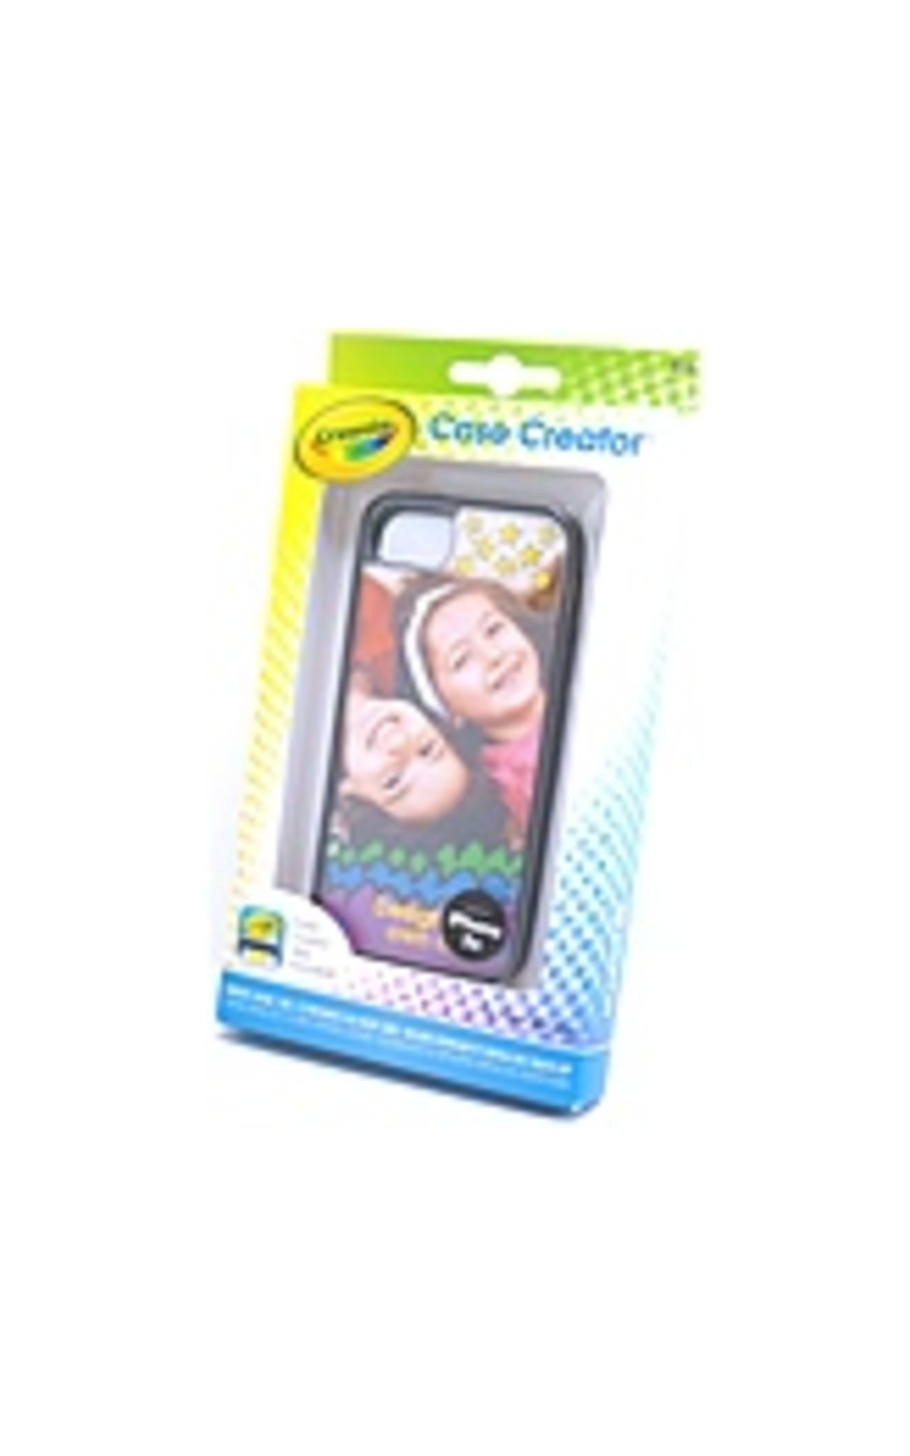 Crayola Case Creator for iPhone 5 - iPhone - Black, Clear